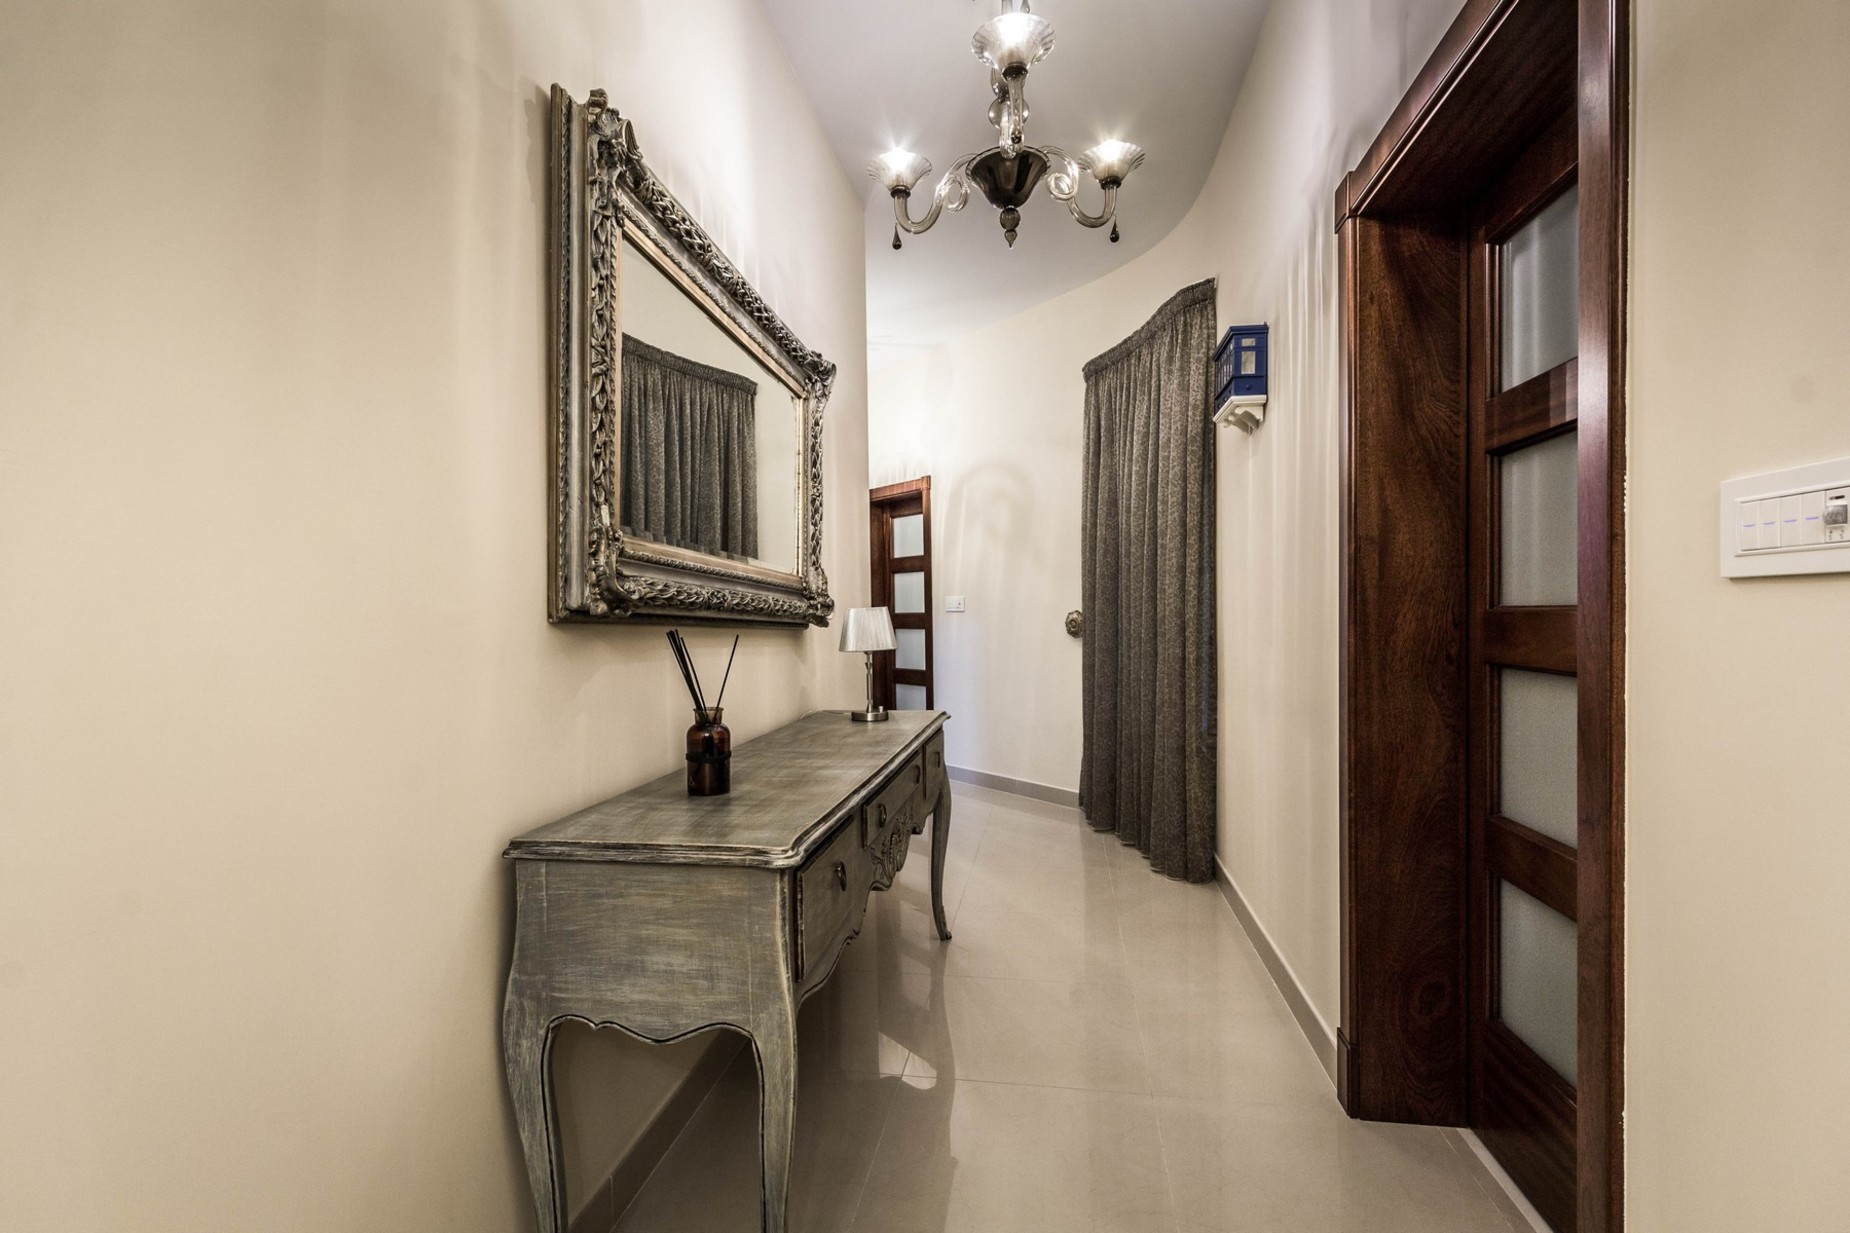 3 bed Apartment For Sale in Mellieha, Mellieha - thumb 9